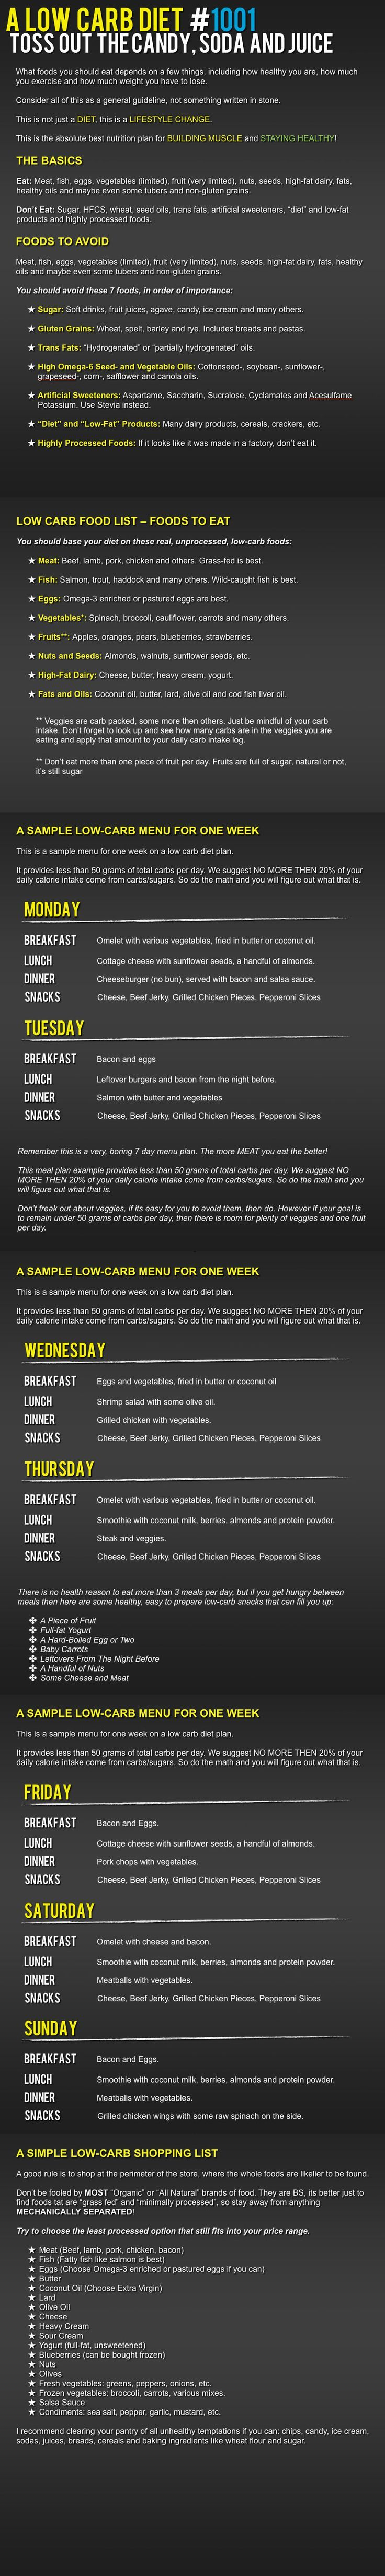 Here is a great graphic on low carb diet. it includes a food list and simple meal plan.: